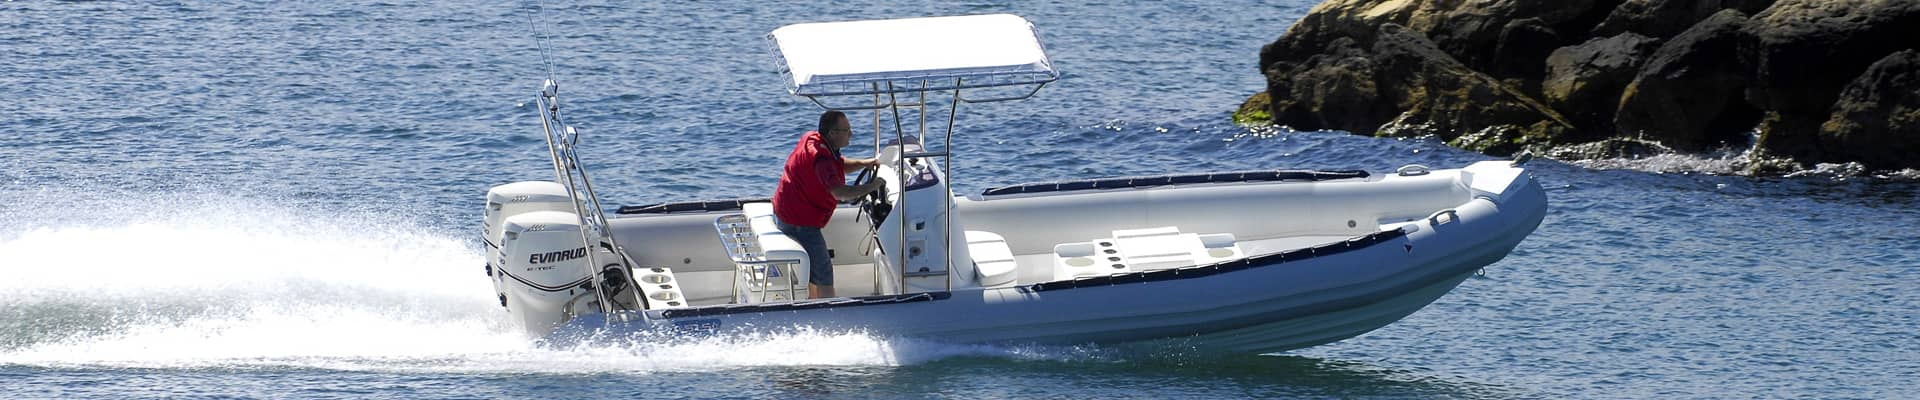 professional-diving-boat